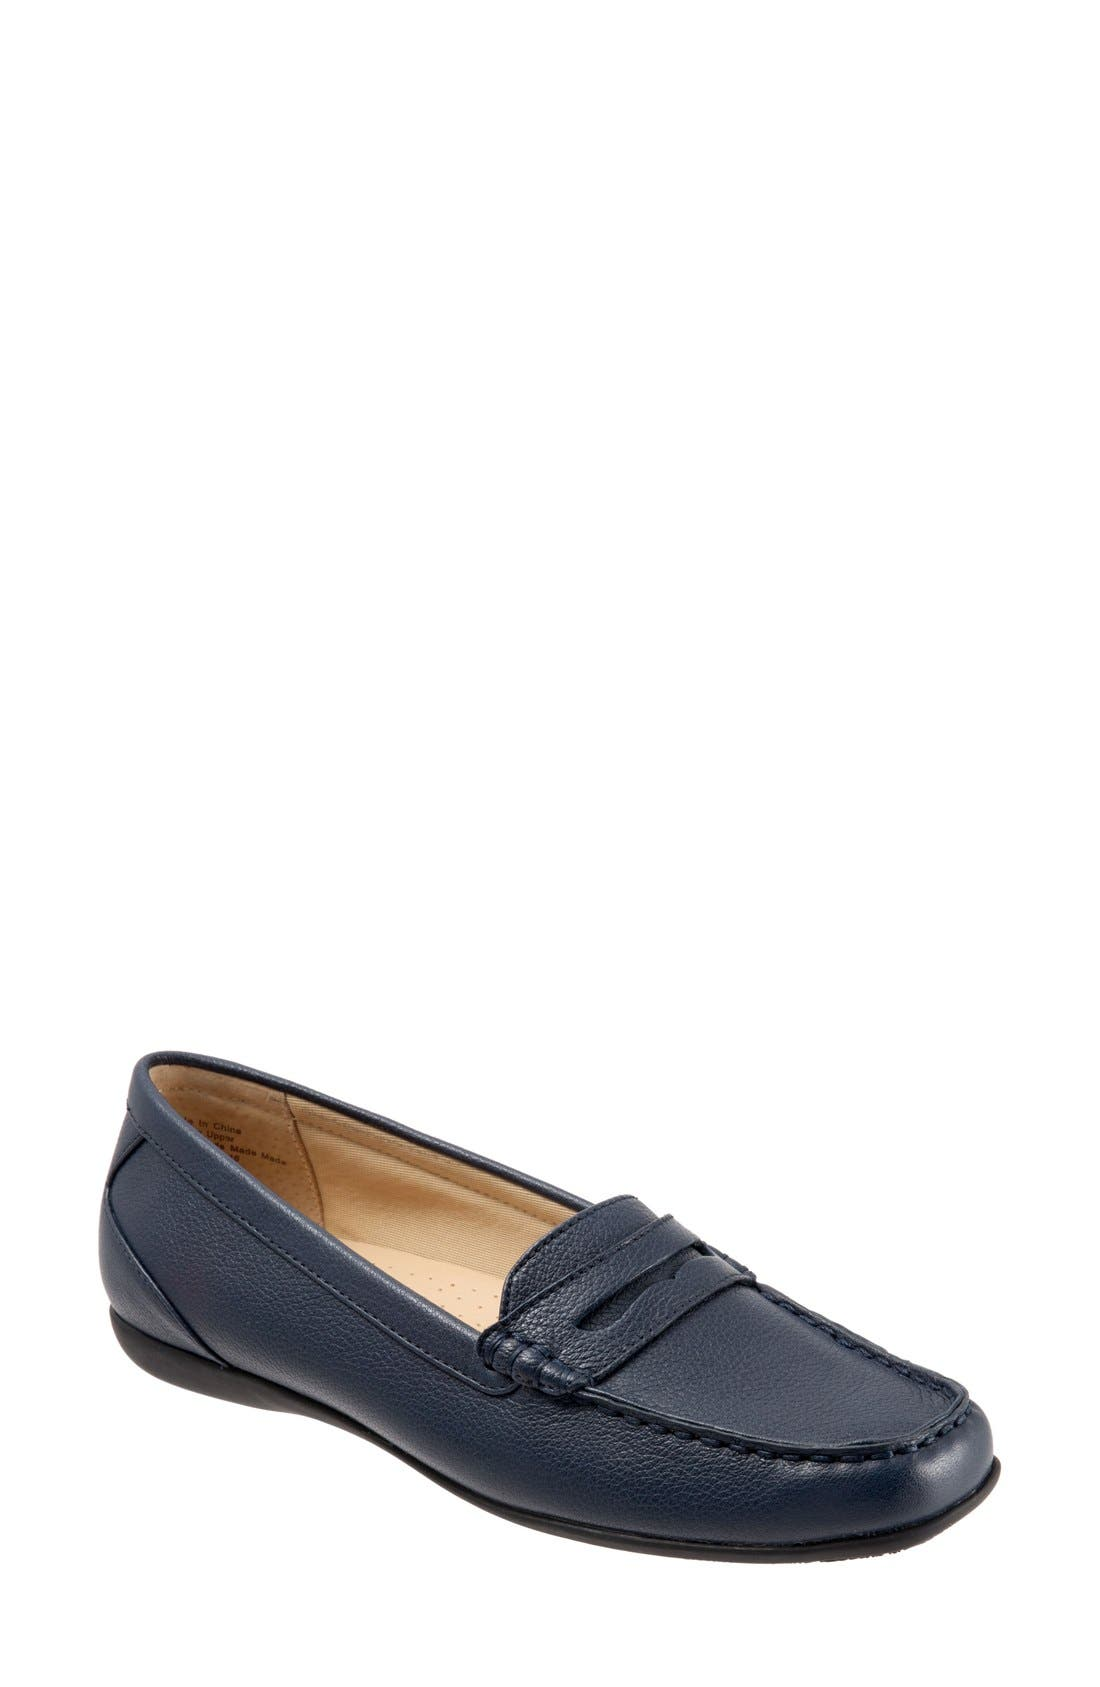 'Staci' Penny Loafer,                             Main thumbnail 1, color,                             Navy Leather